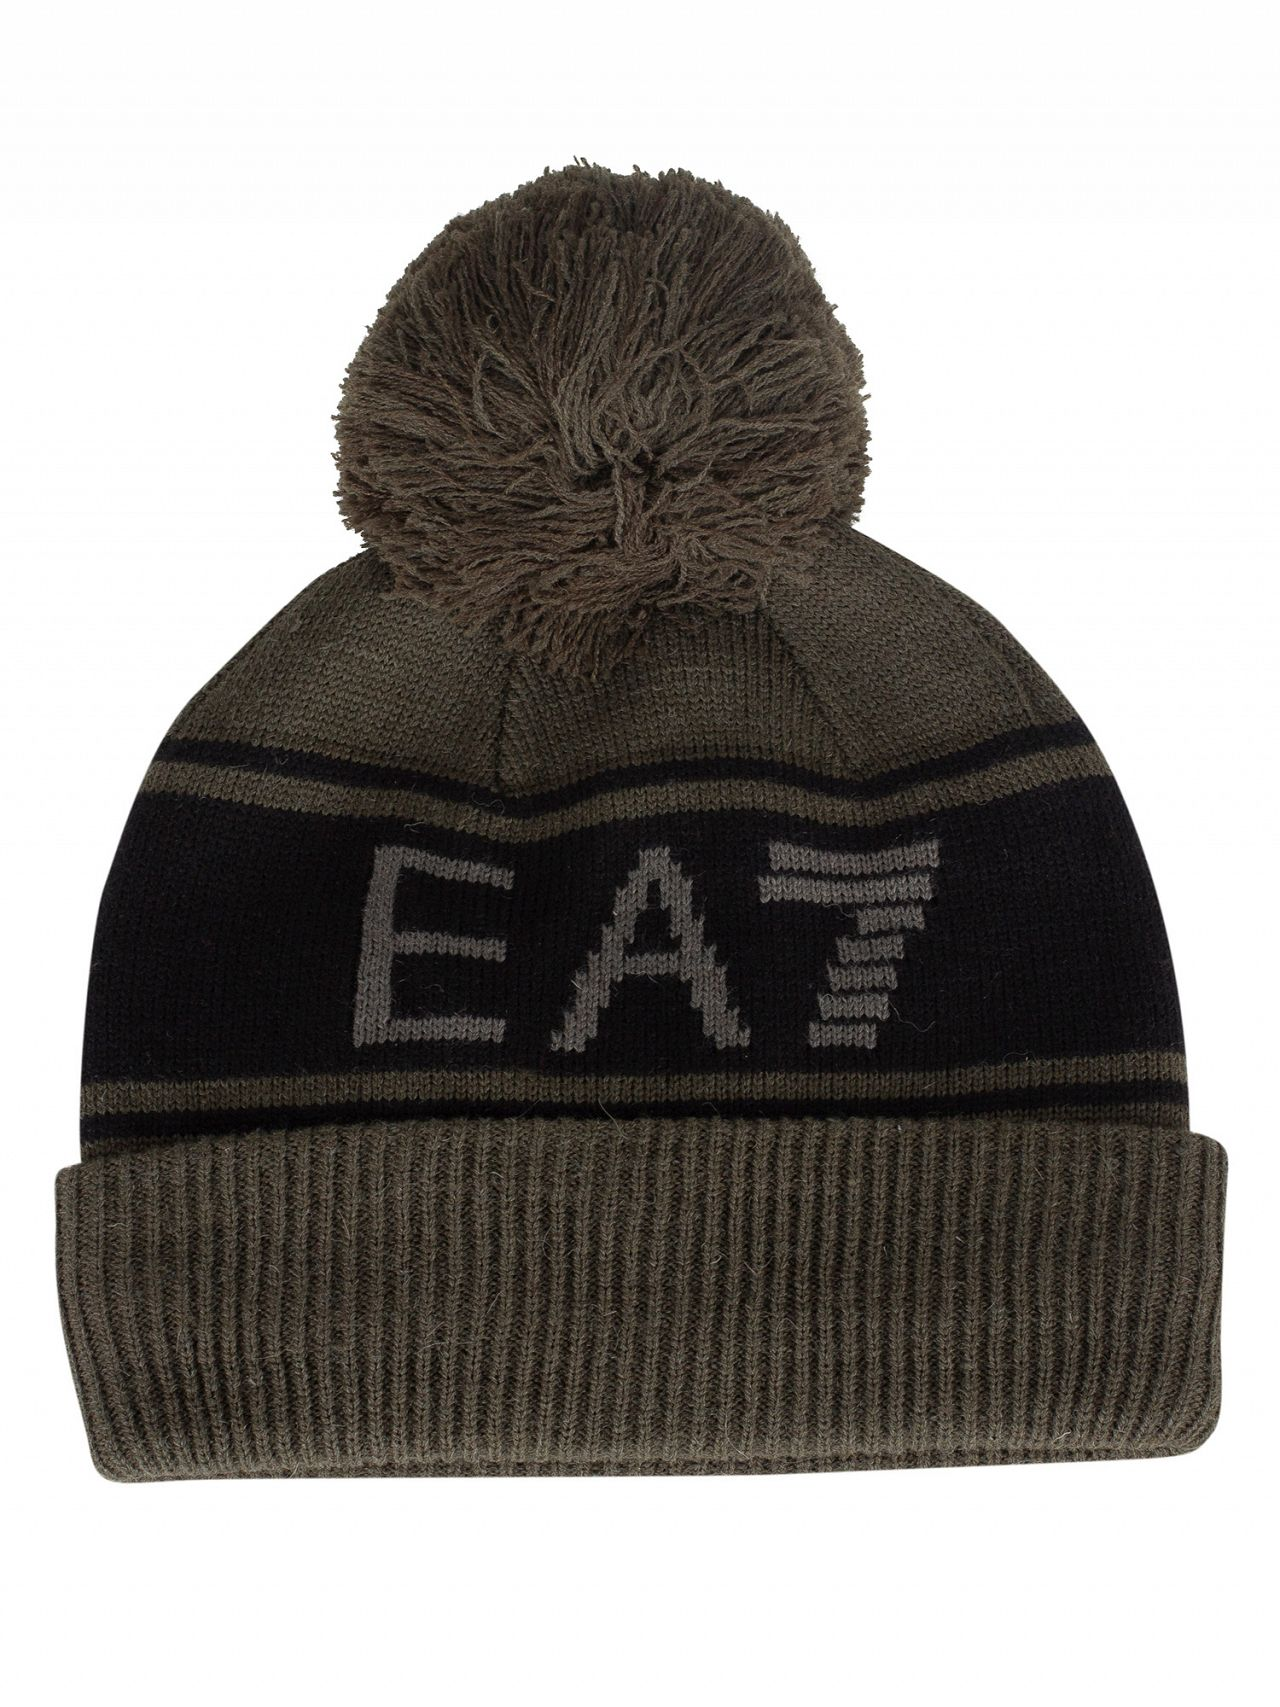 EA7 Forest Night Urban Beanie  1cd0f0e836a